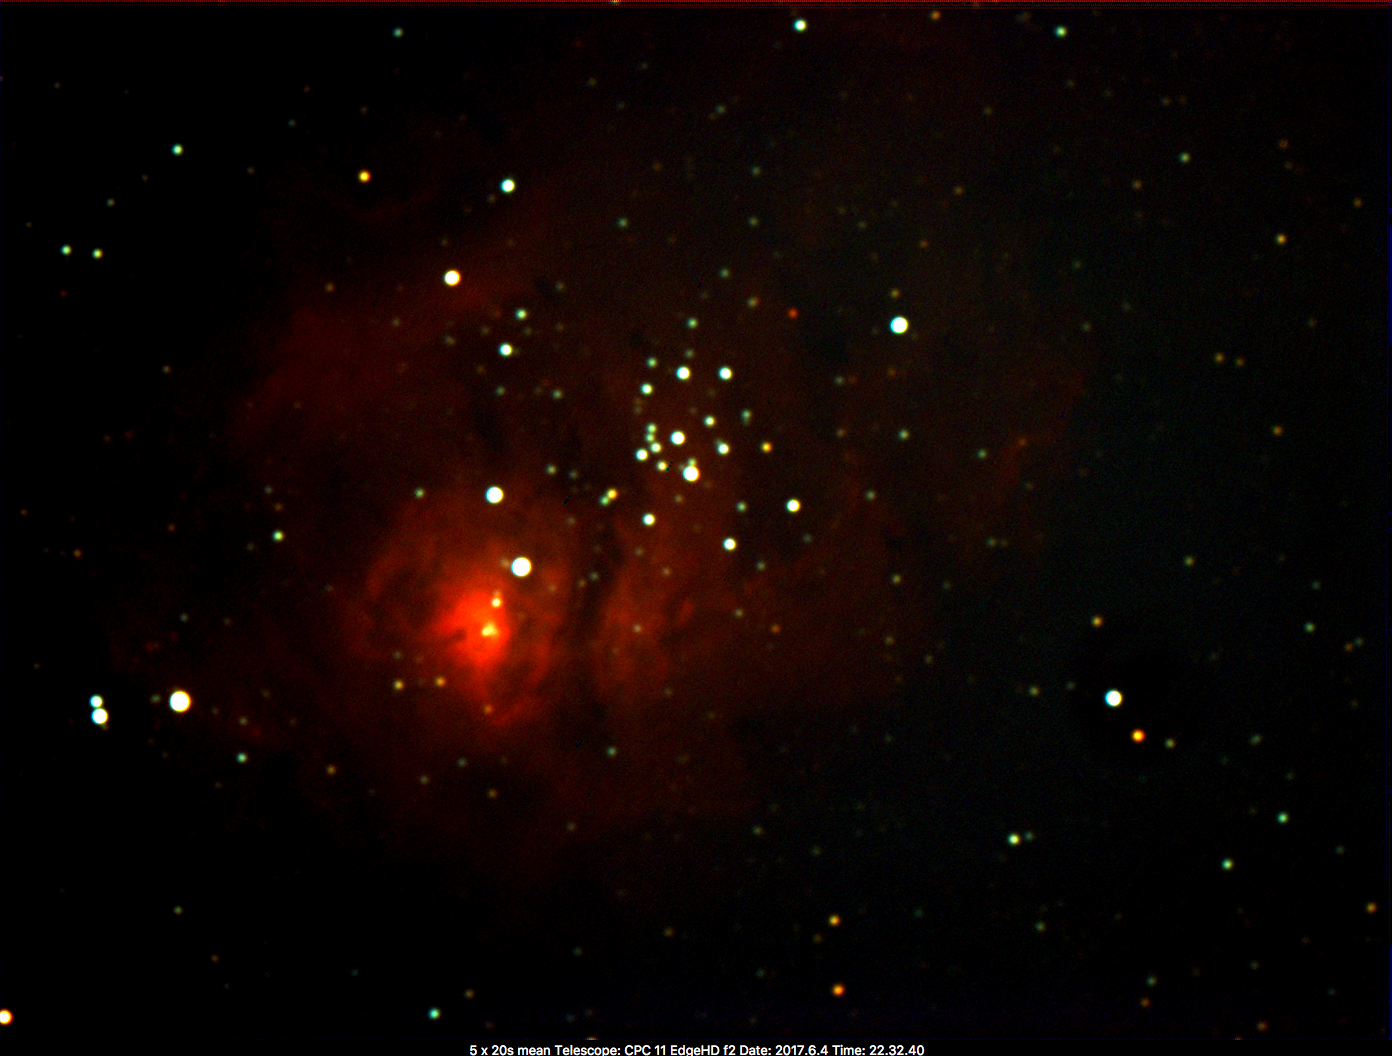 Image_2017.6.4_22.32.40_Messier 8.png